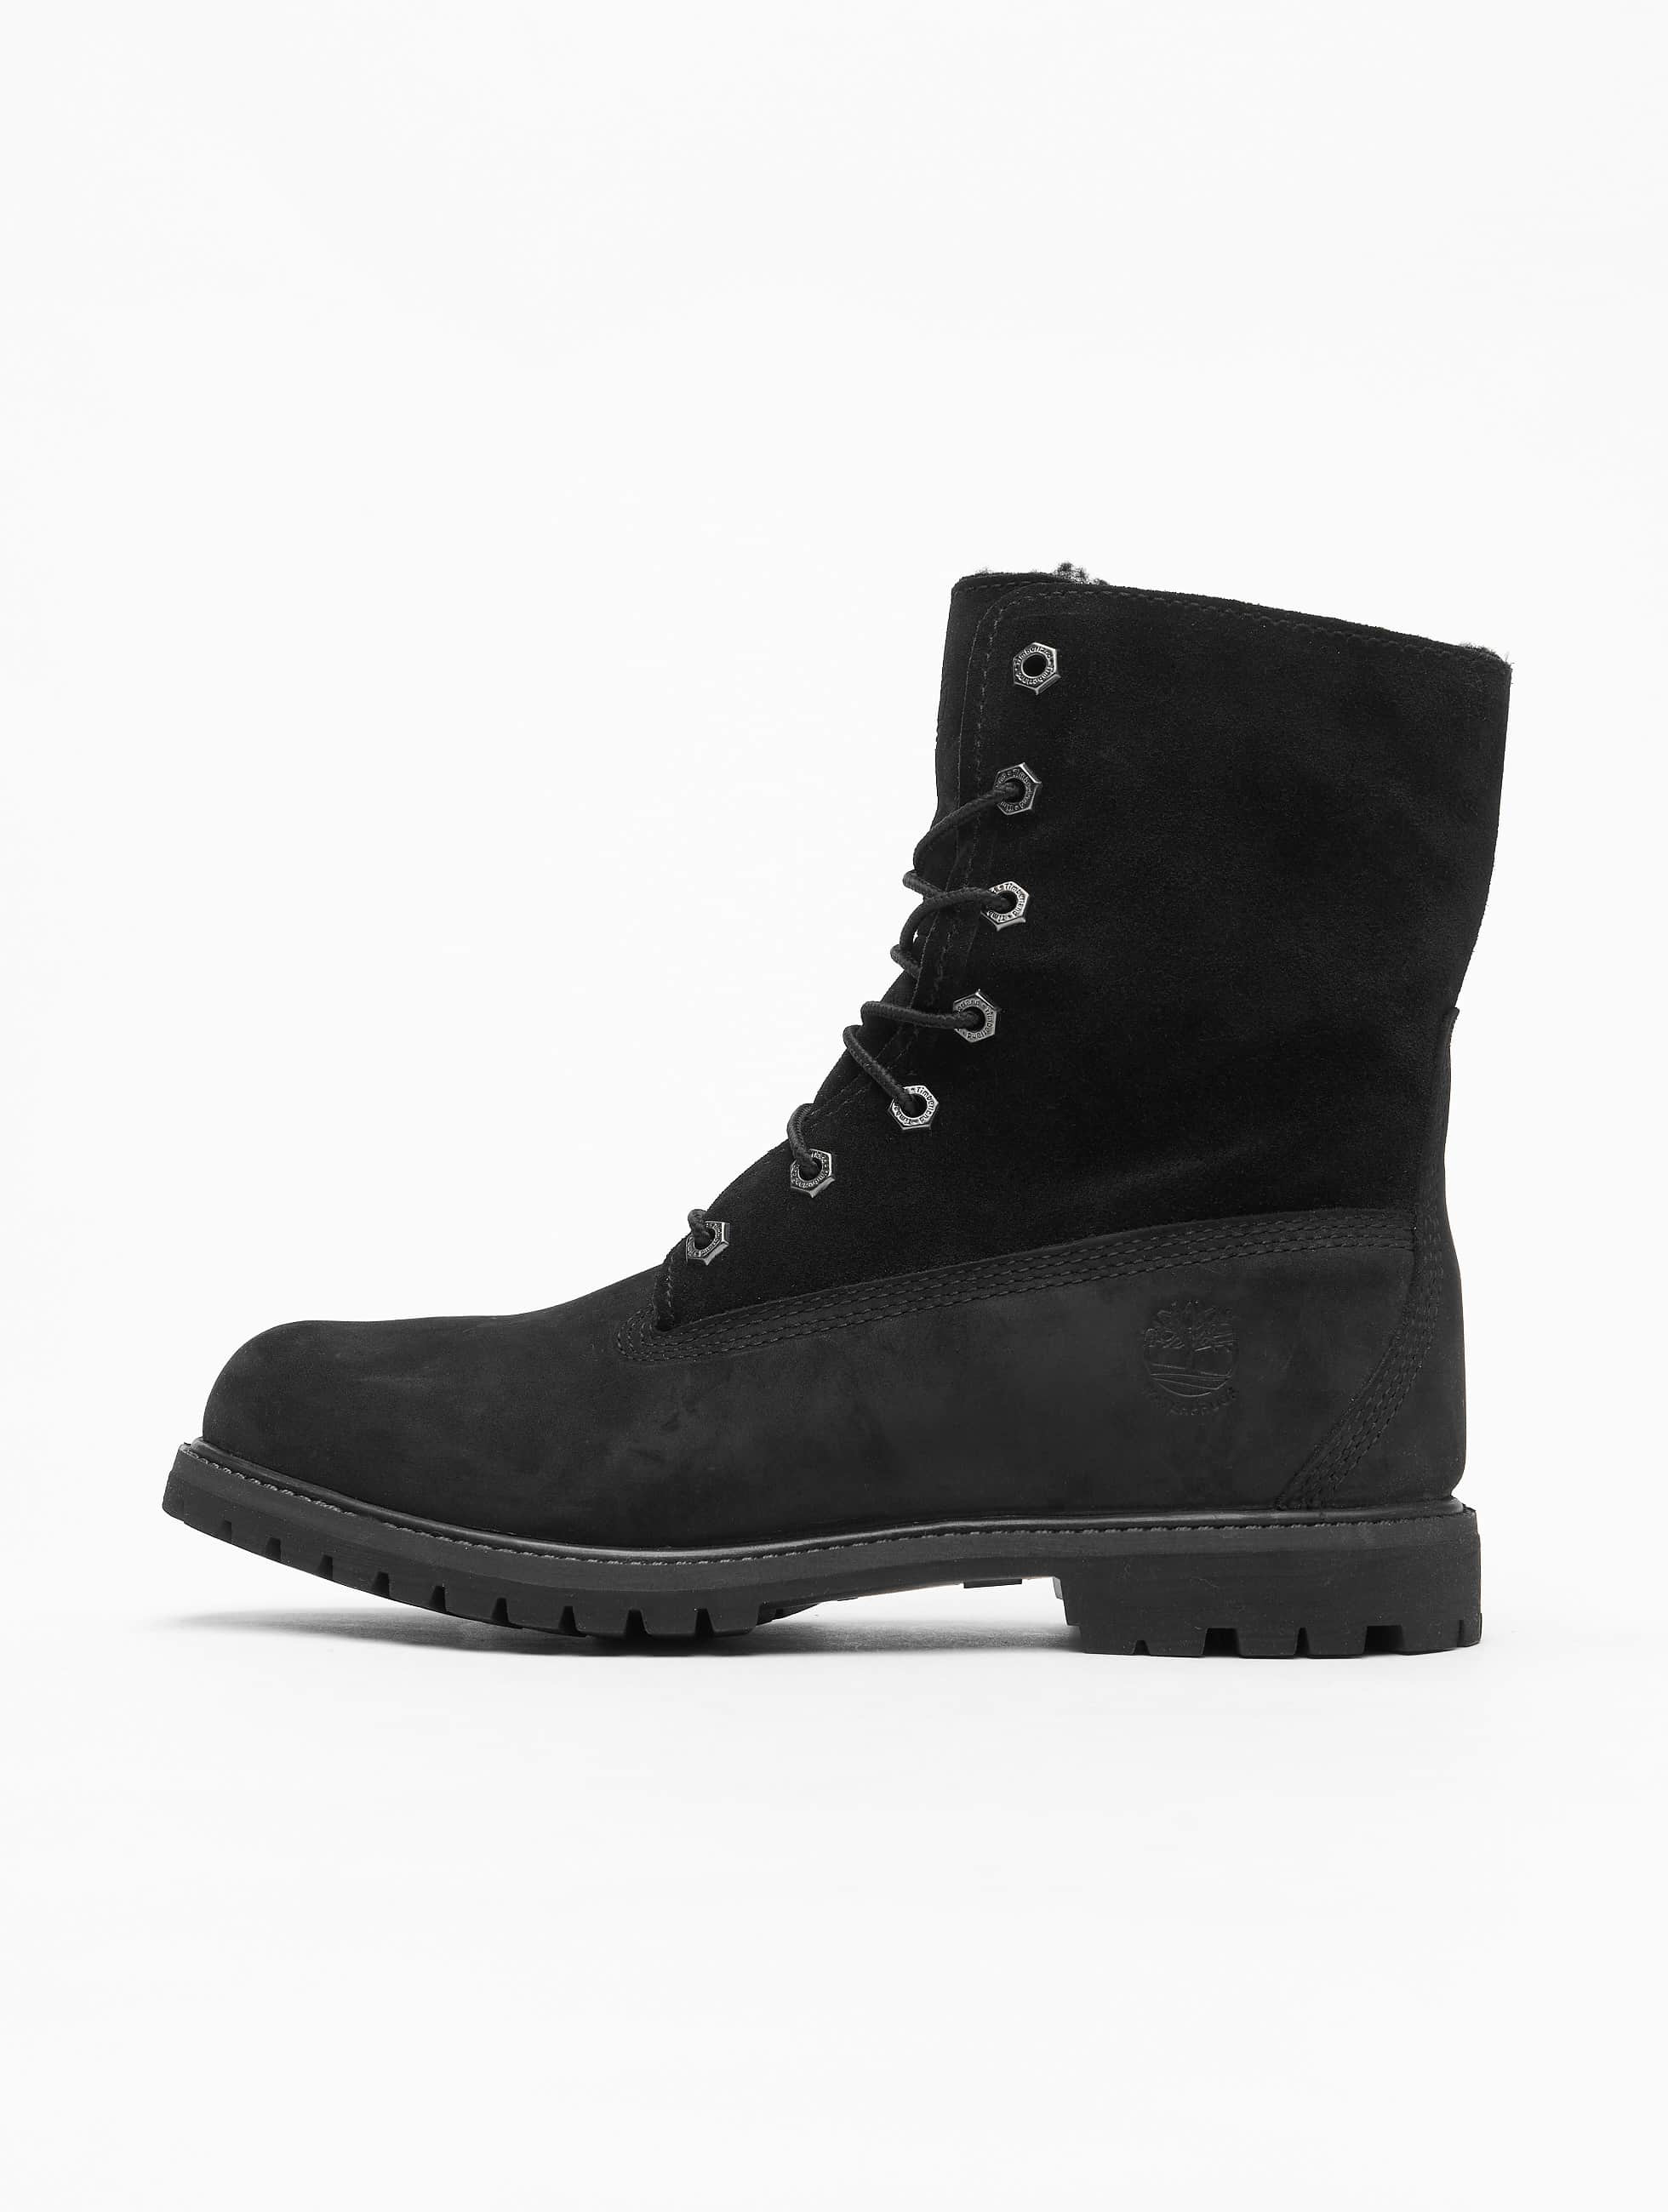 Timberland Authentics Waterproof noir Chaussures montantes femme